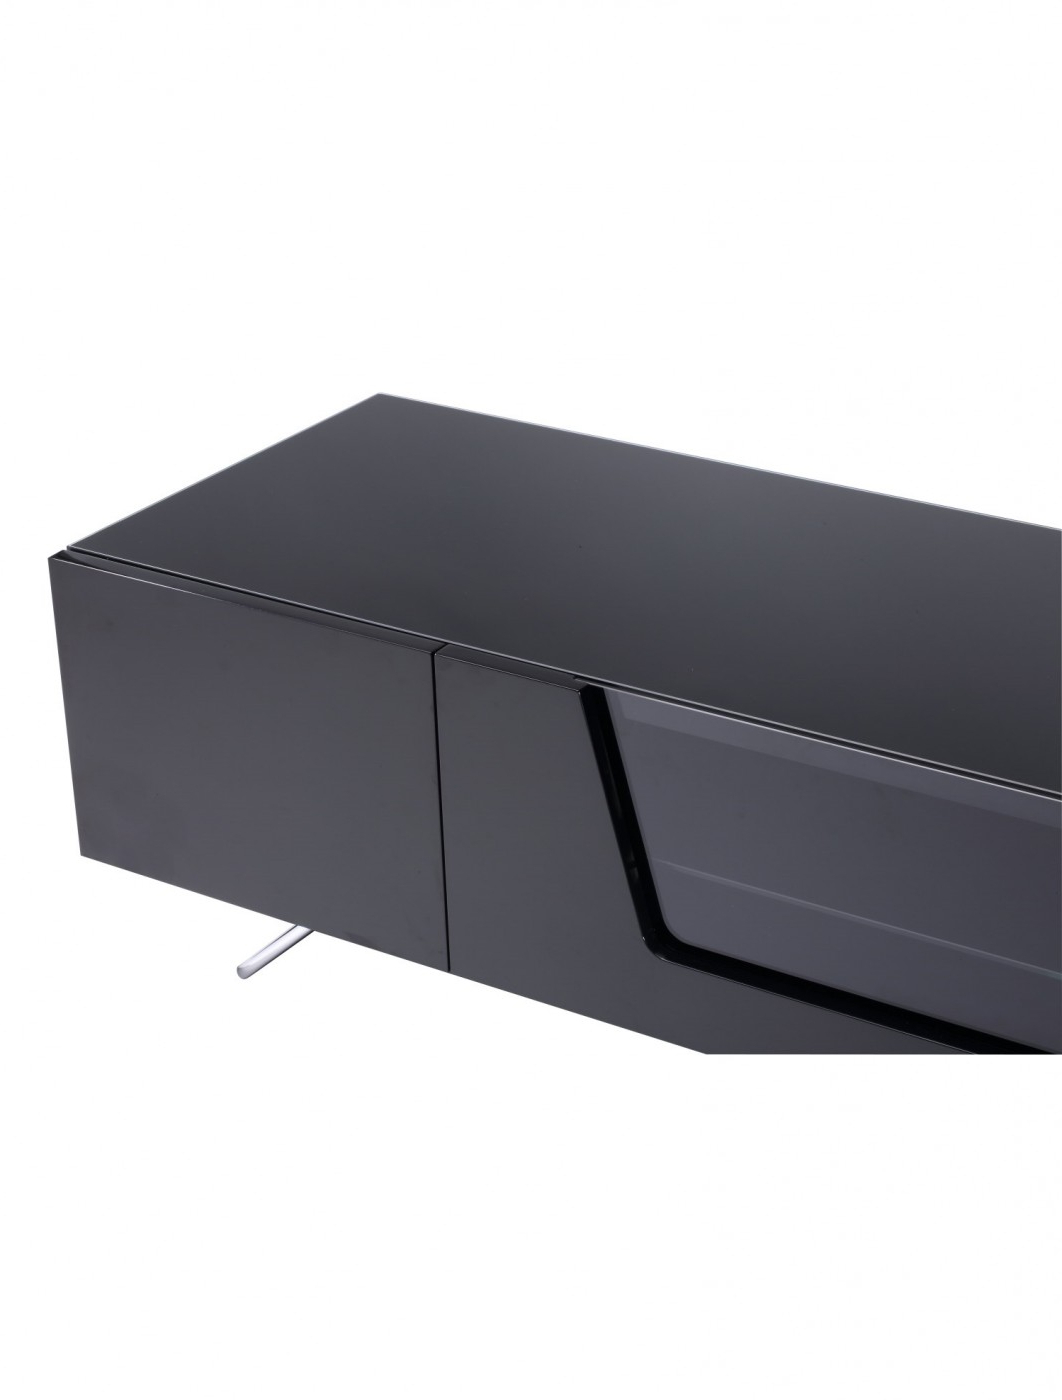 Preferred Alphason Chromium Cantilever Tv Stand Cro2 1600bkt Bk In Chromium Tv Stands (View 20 of 25)